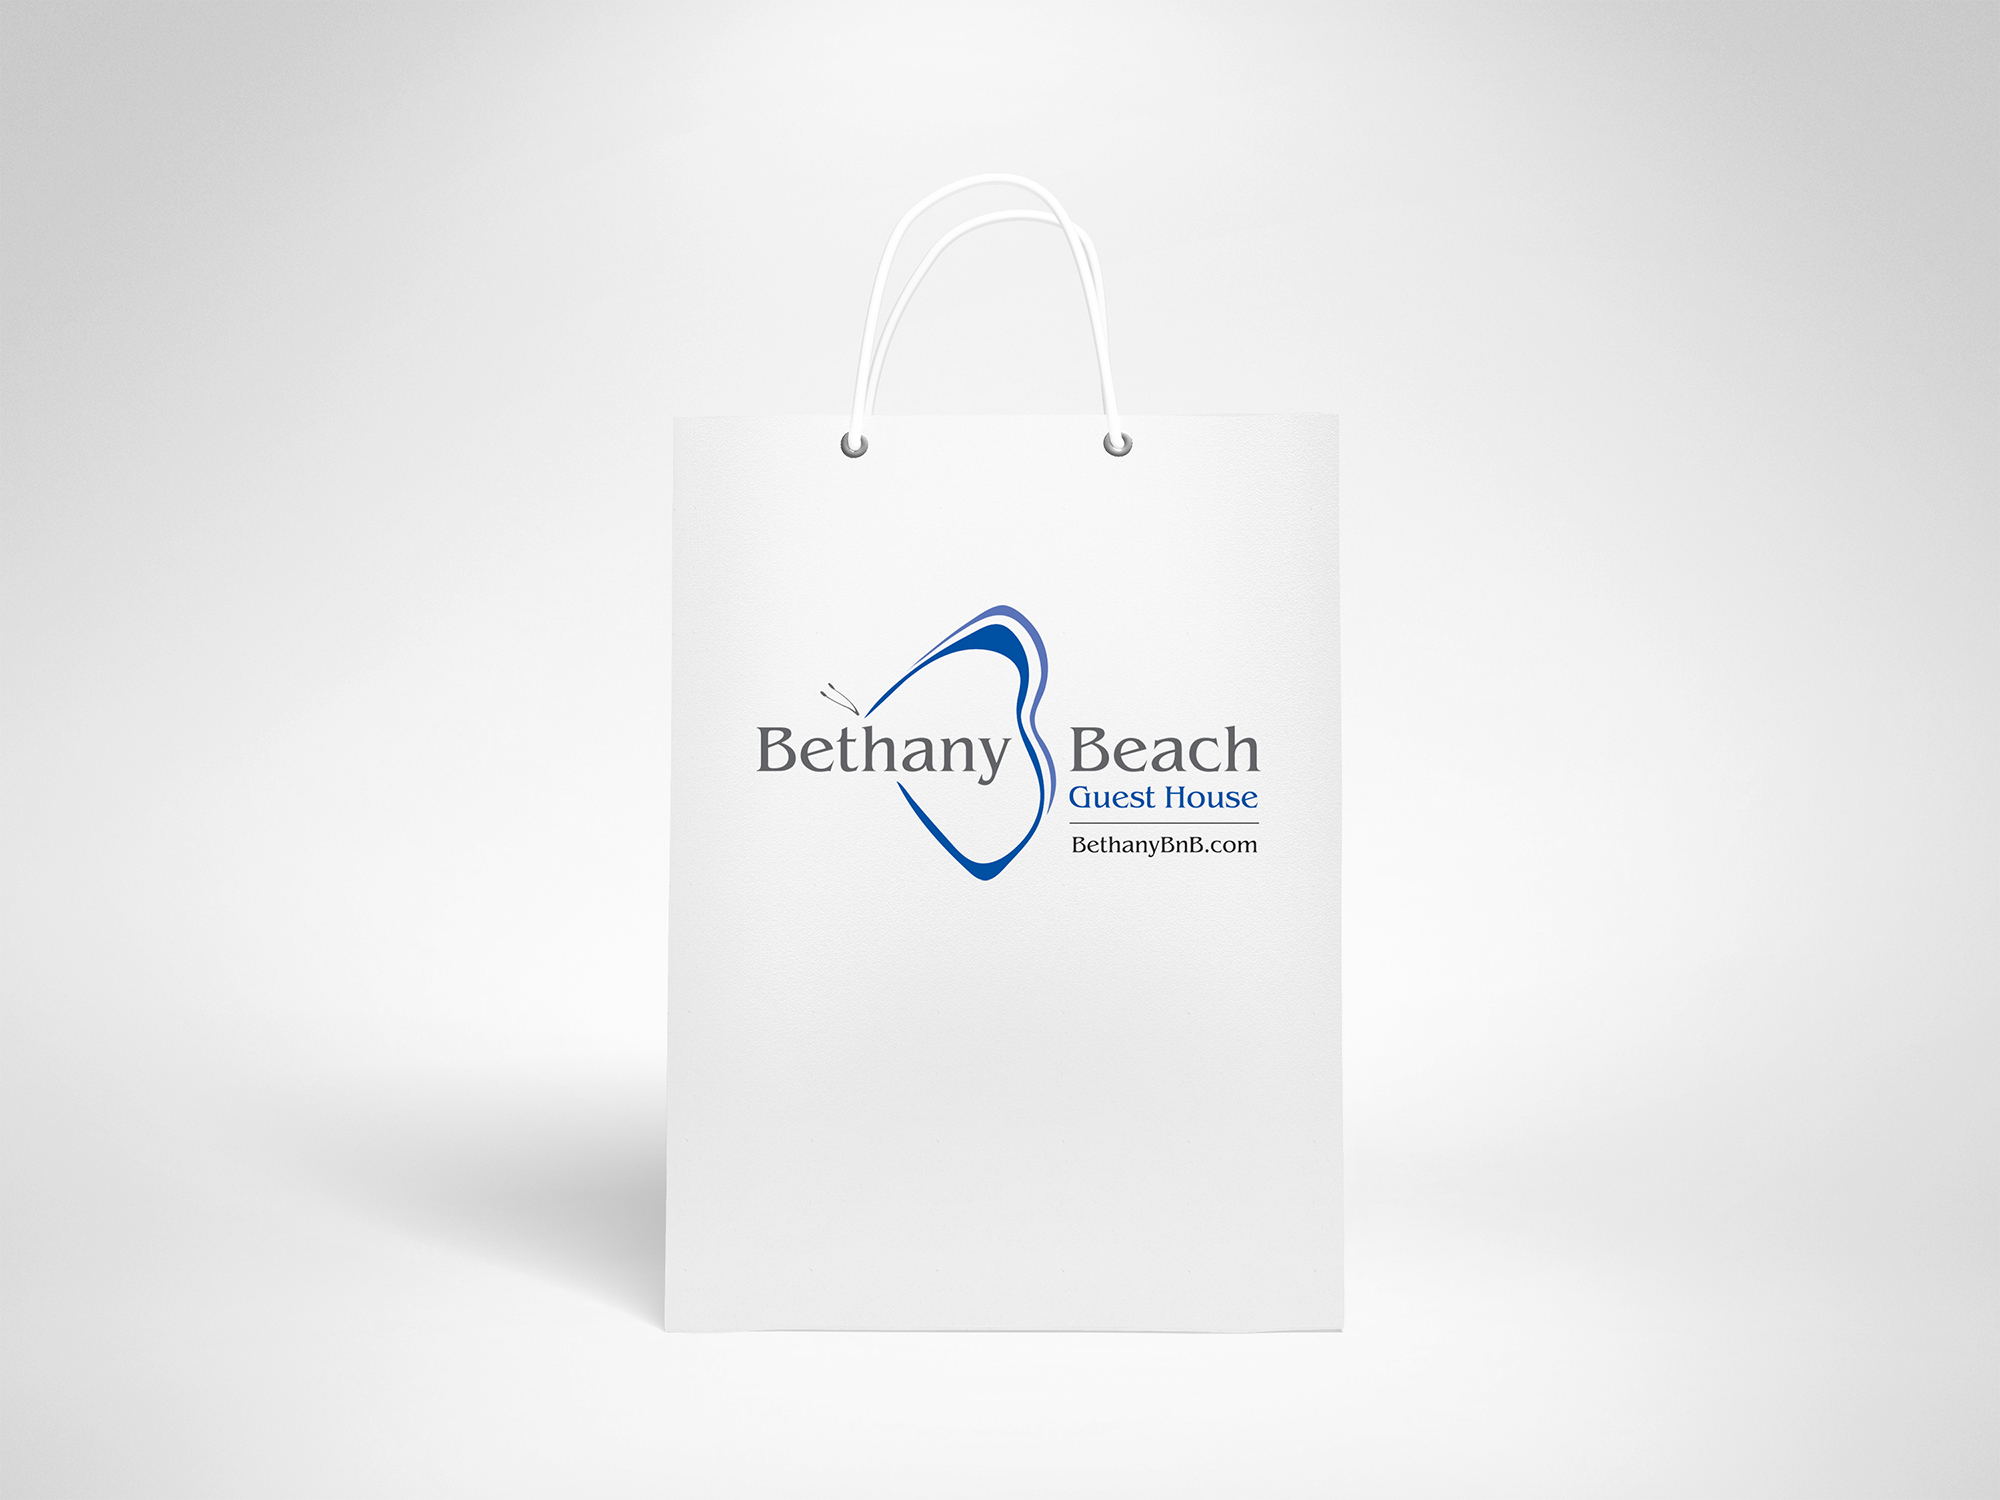 Bethany Beach BnB logo by iKANDE web design and graphic design